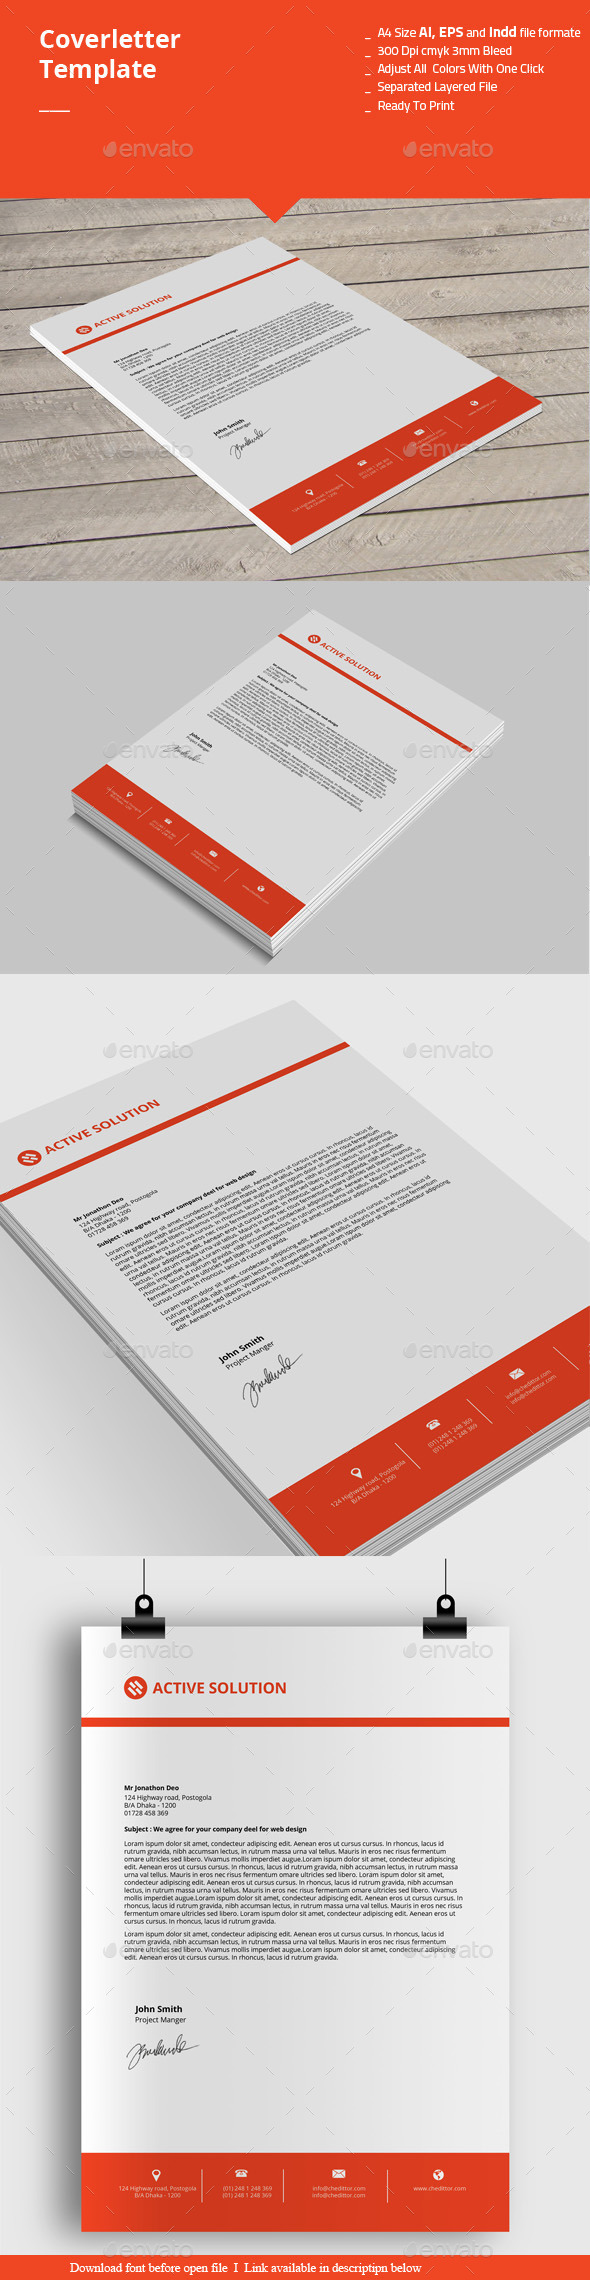 Coverletter Templates - Stationery Print Templates